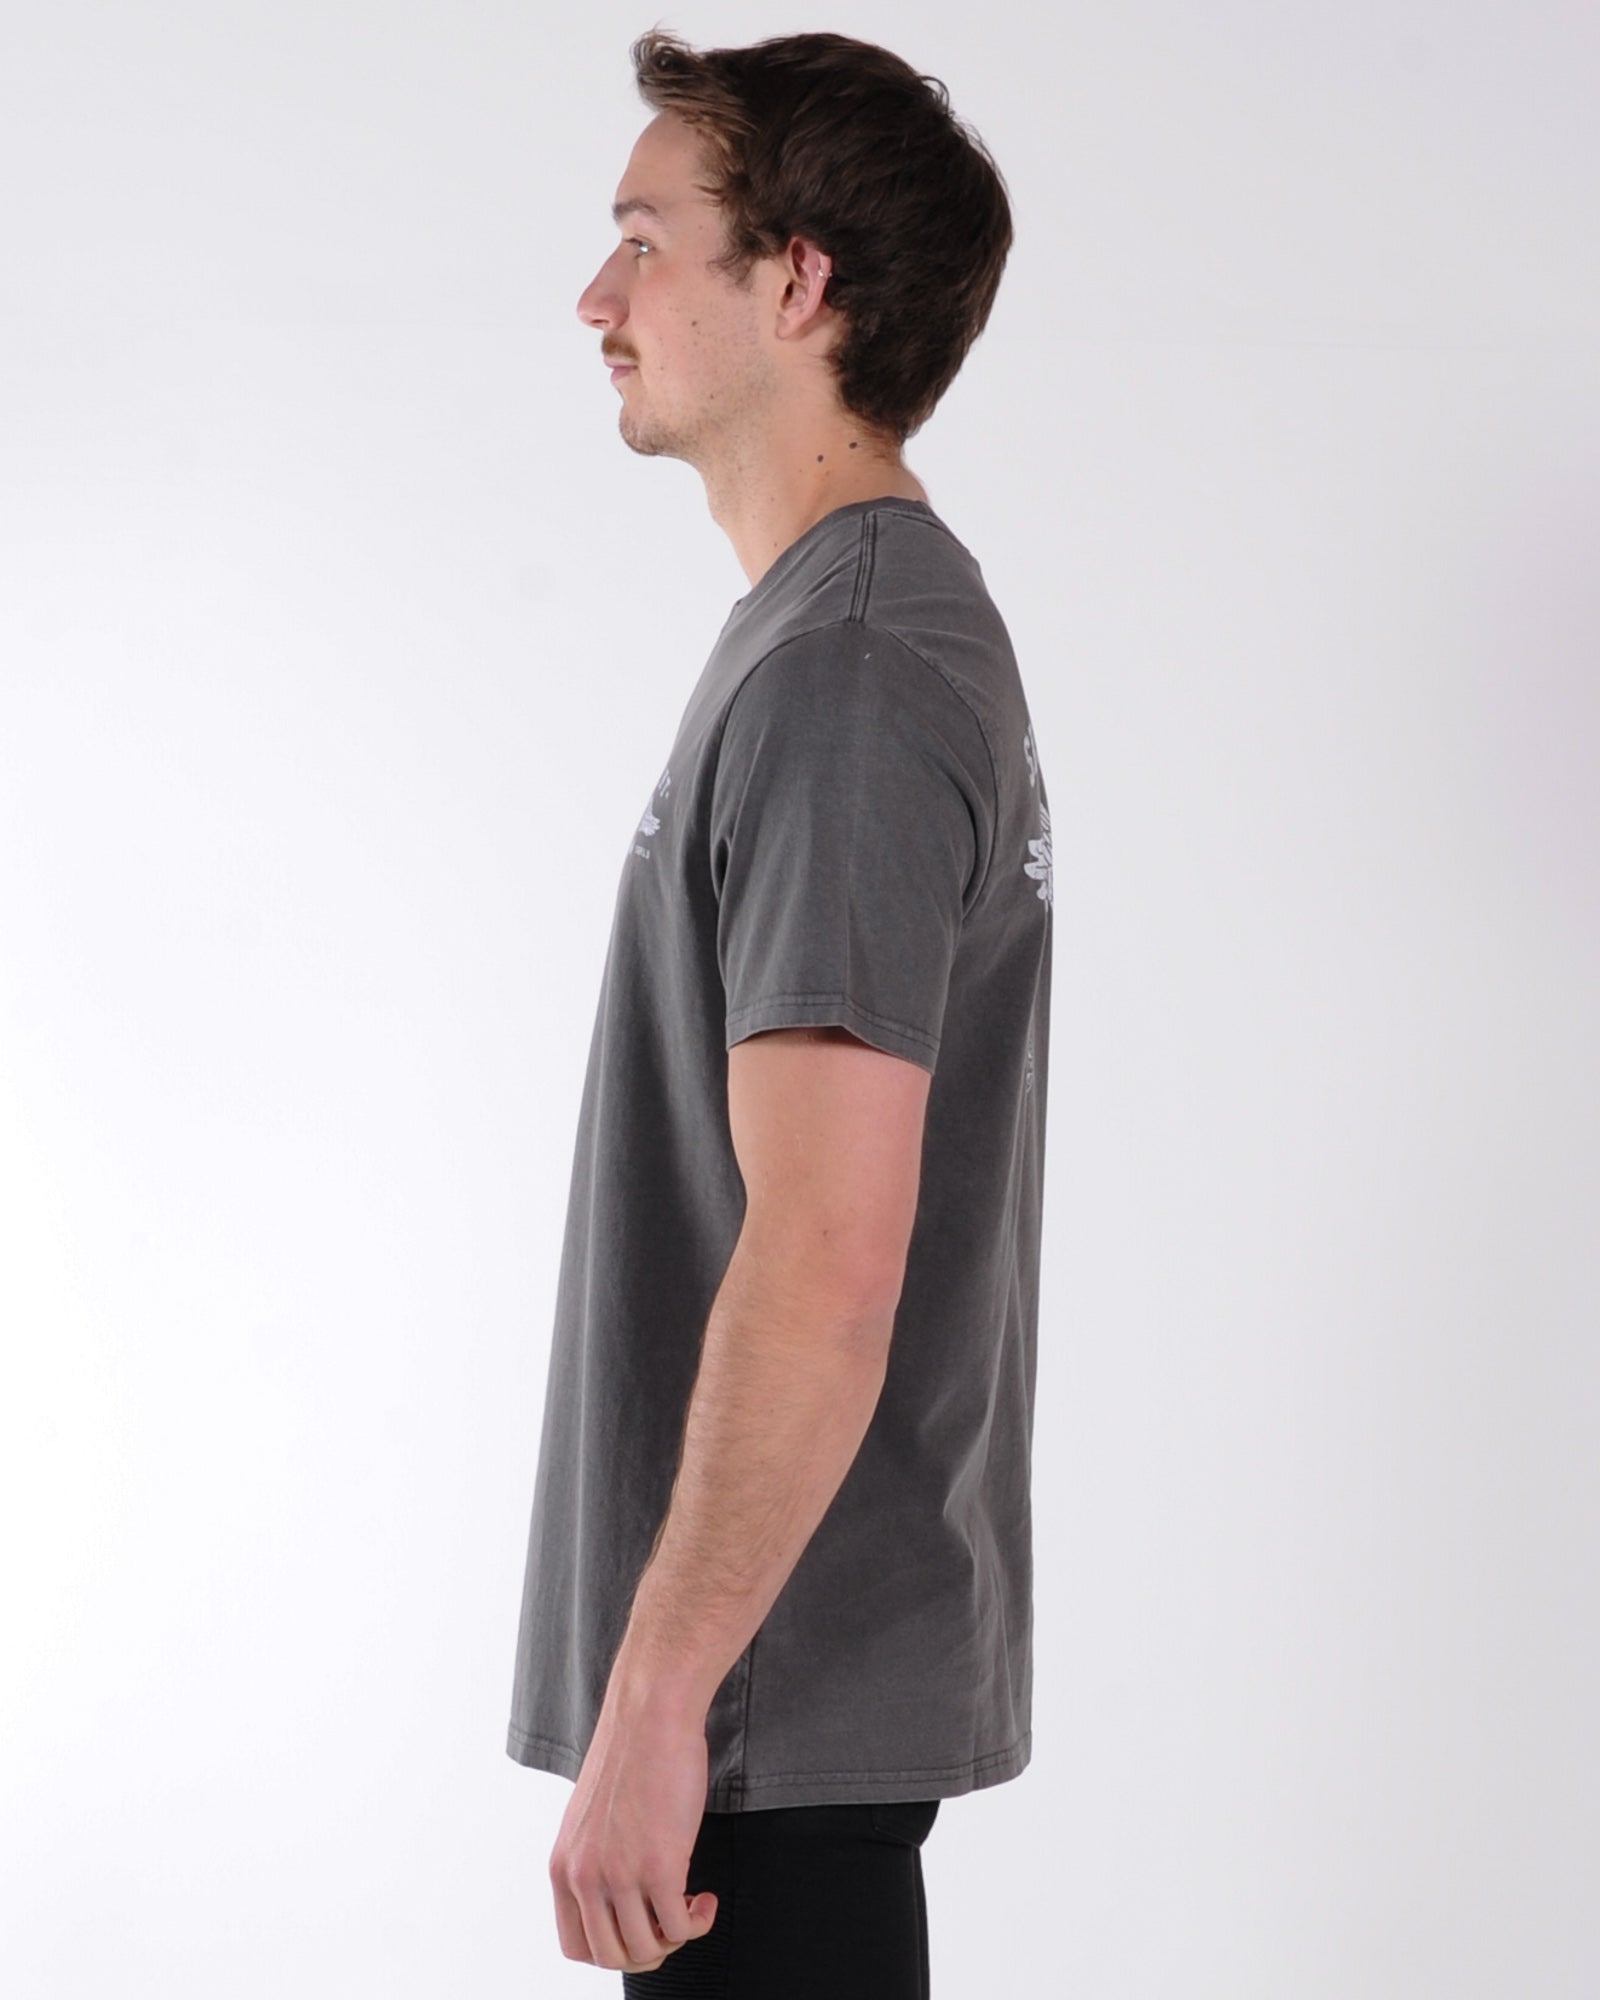 Silent Theory Service Tee - Coal